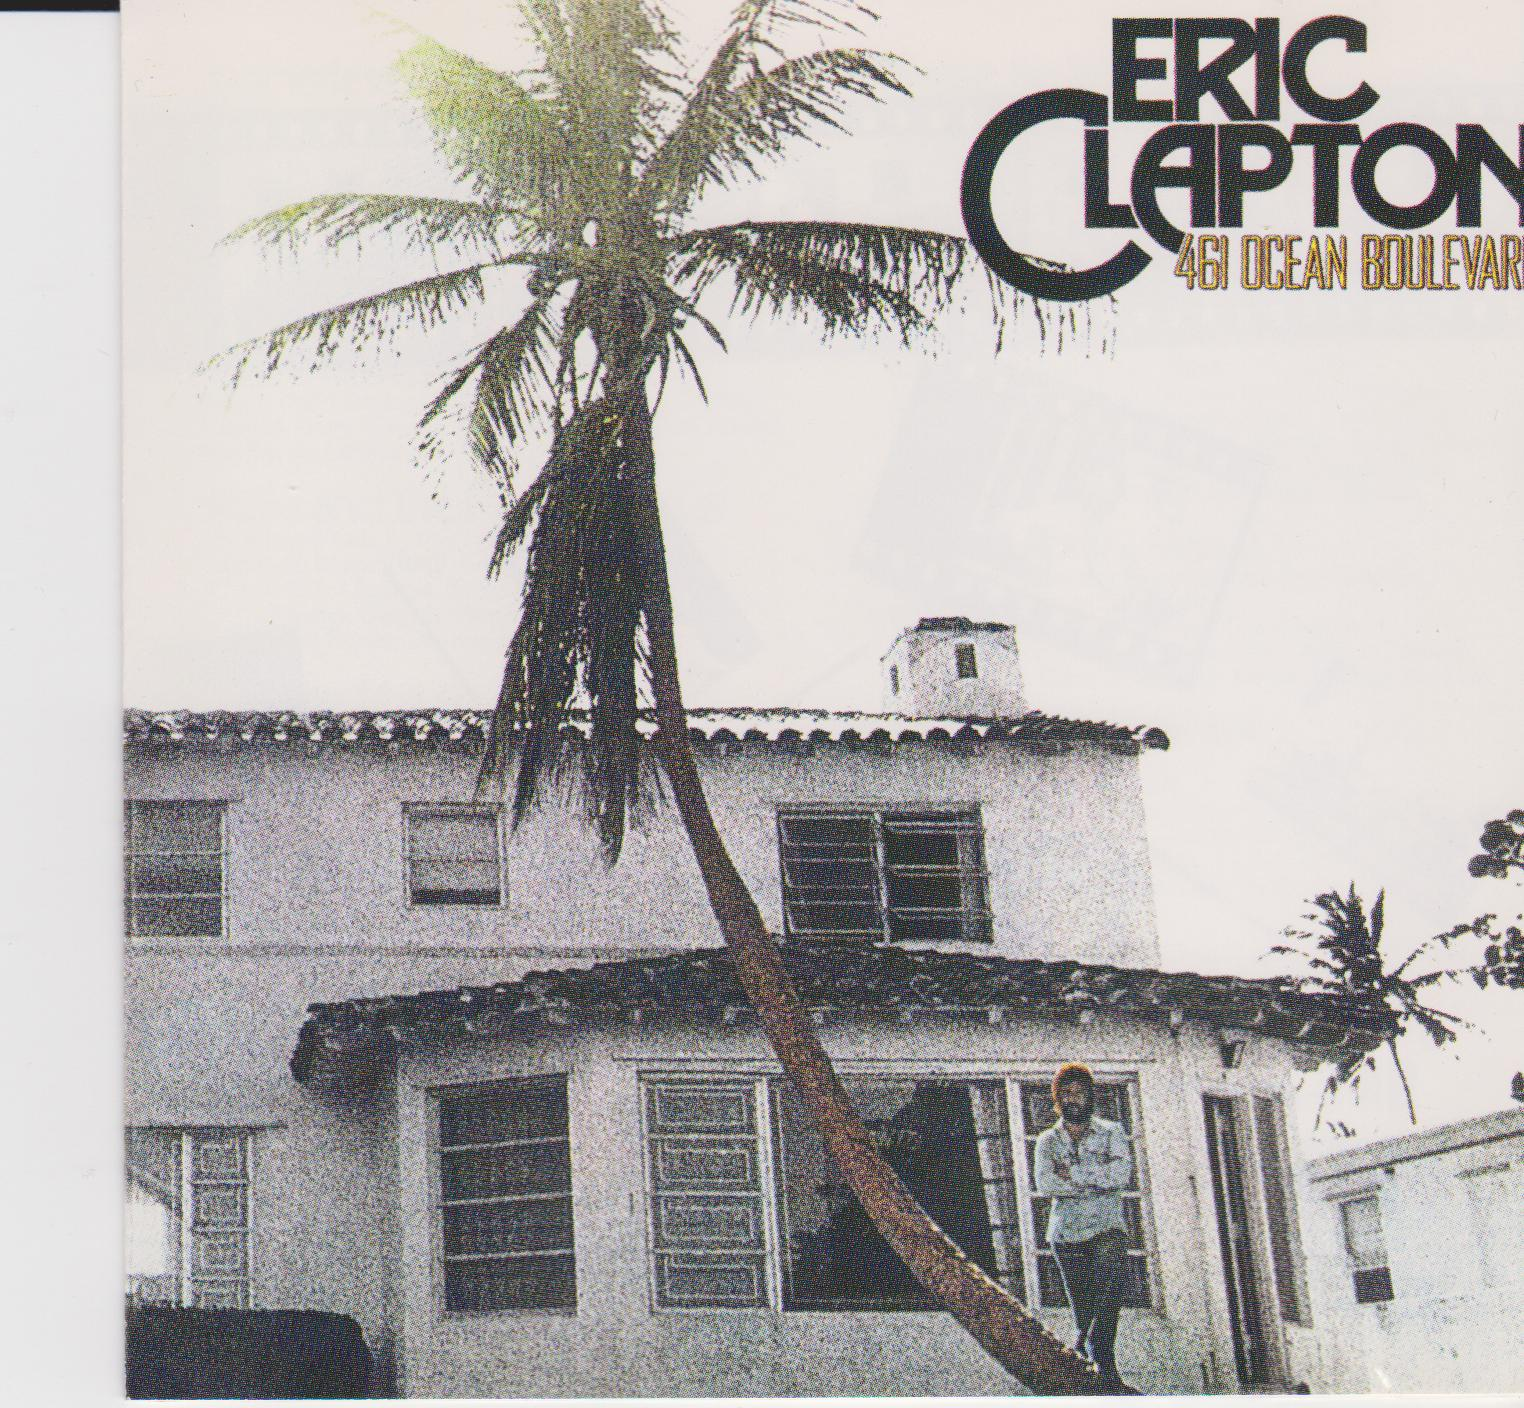 Classic albums 461 ocean boulevard by eric clapton for House classics album